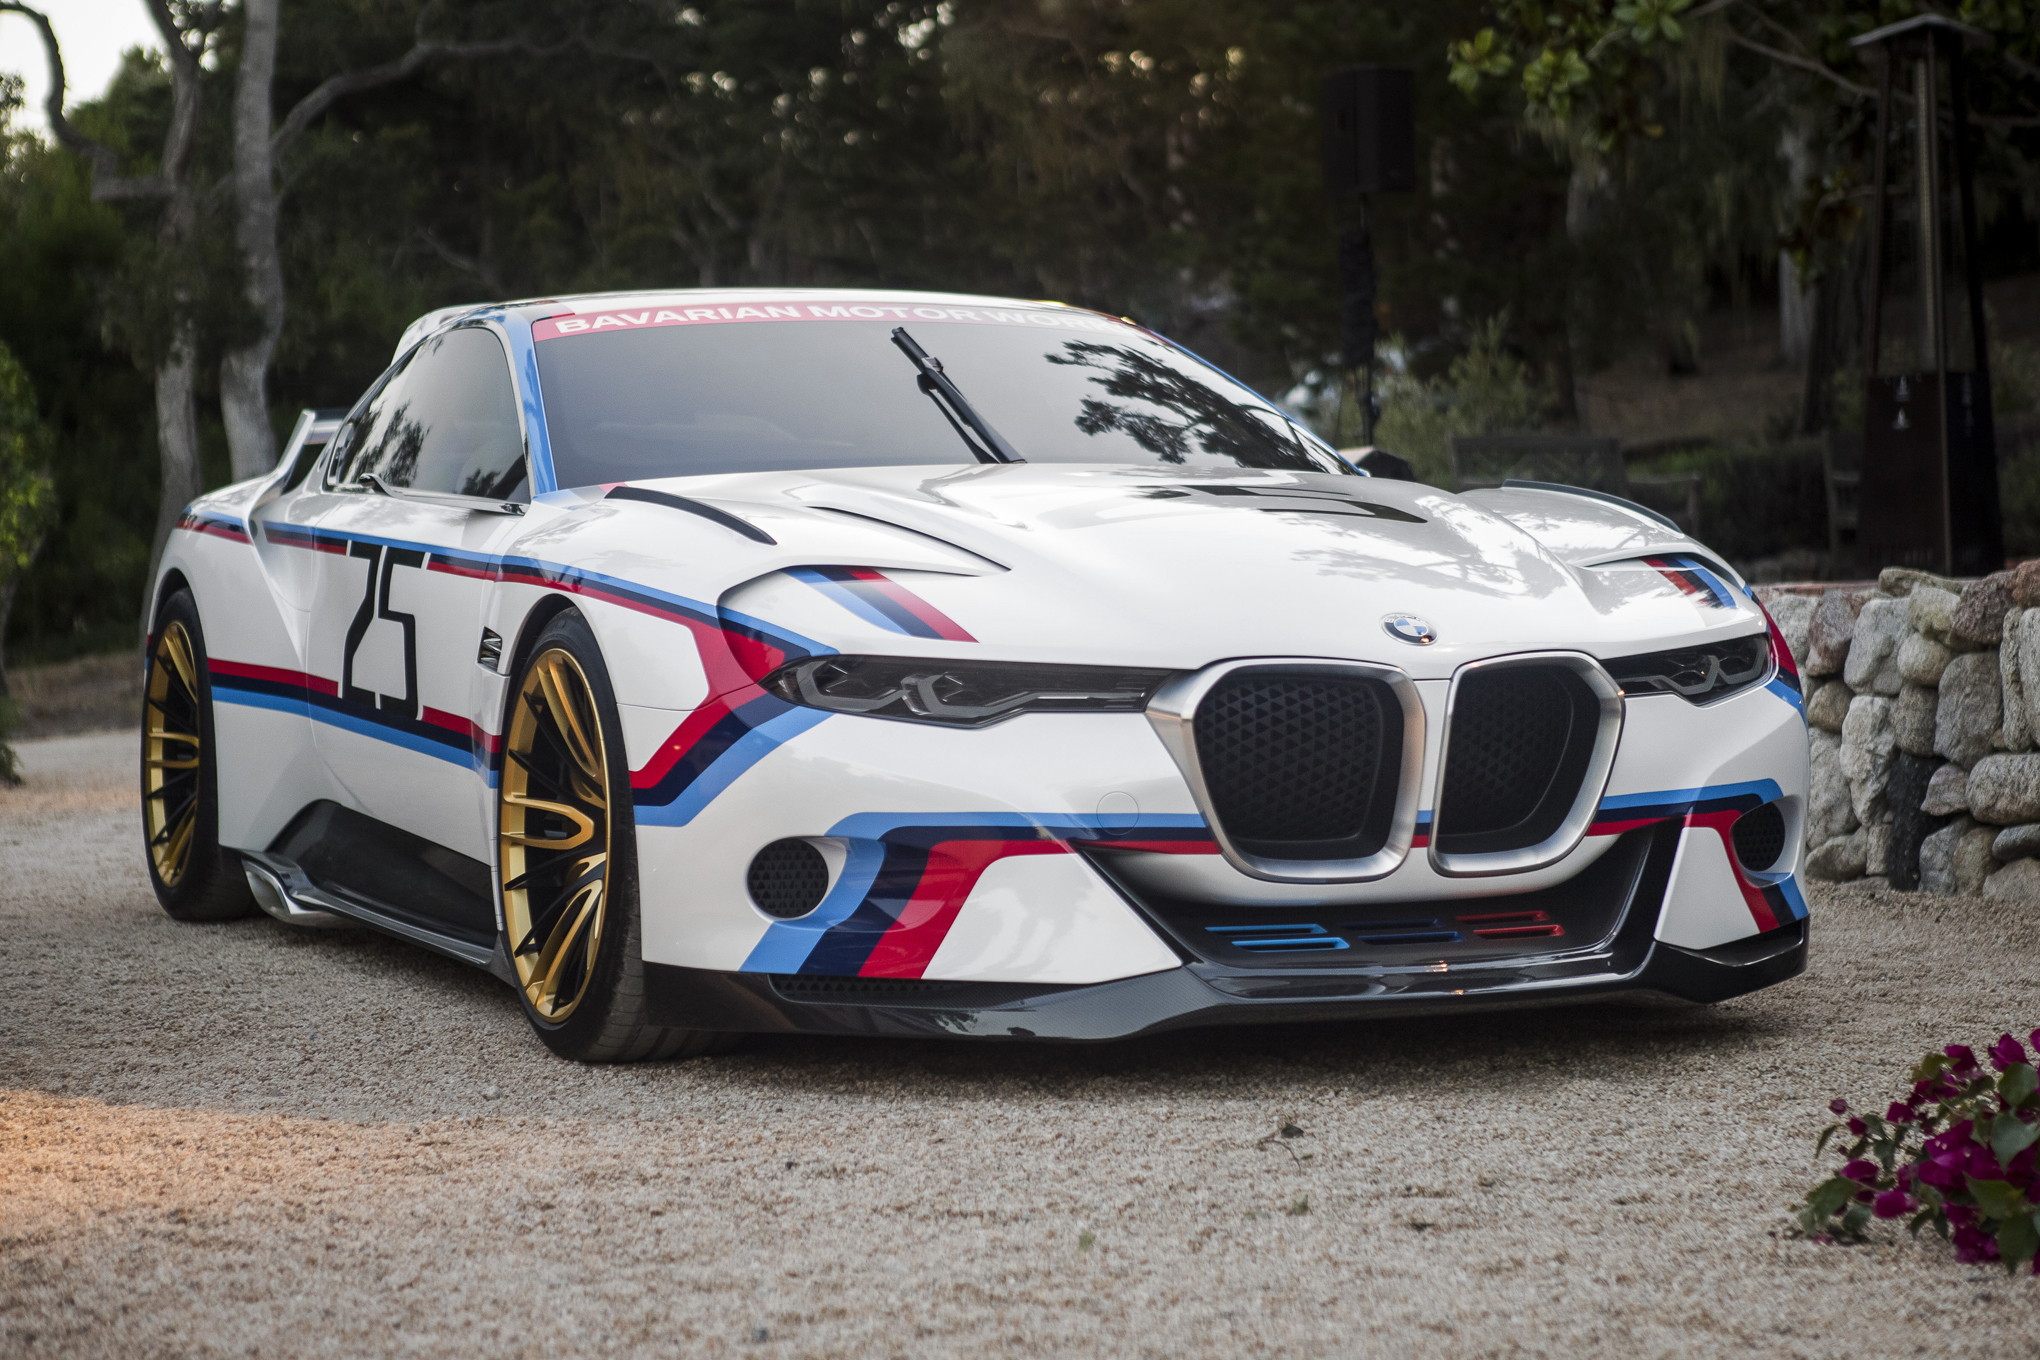 Bmw 3.0 Csl >> Bmw 3 0 Csl Hommage R Shows Off Interactive Features Motortrend